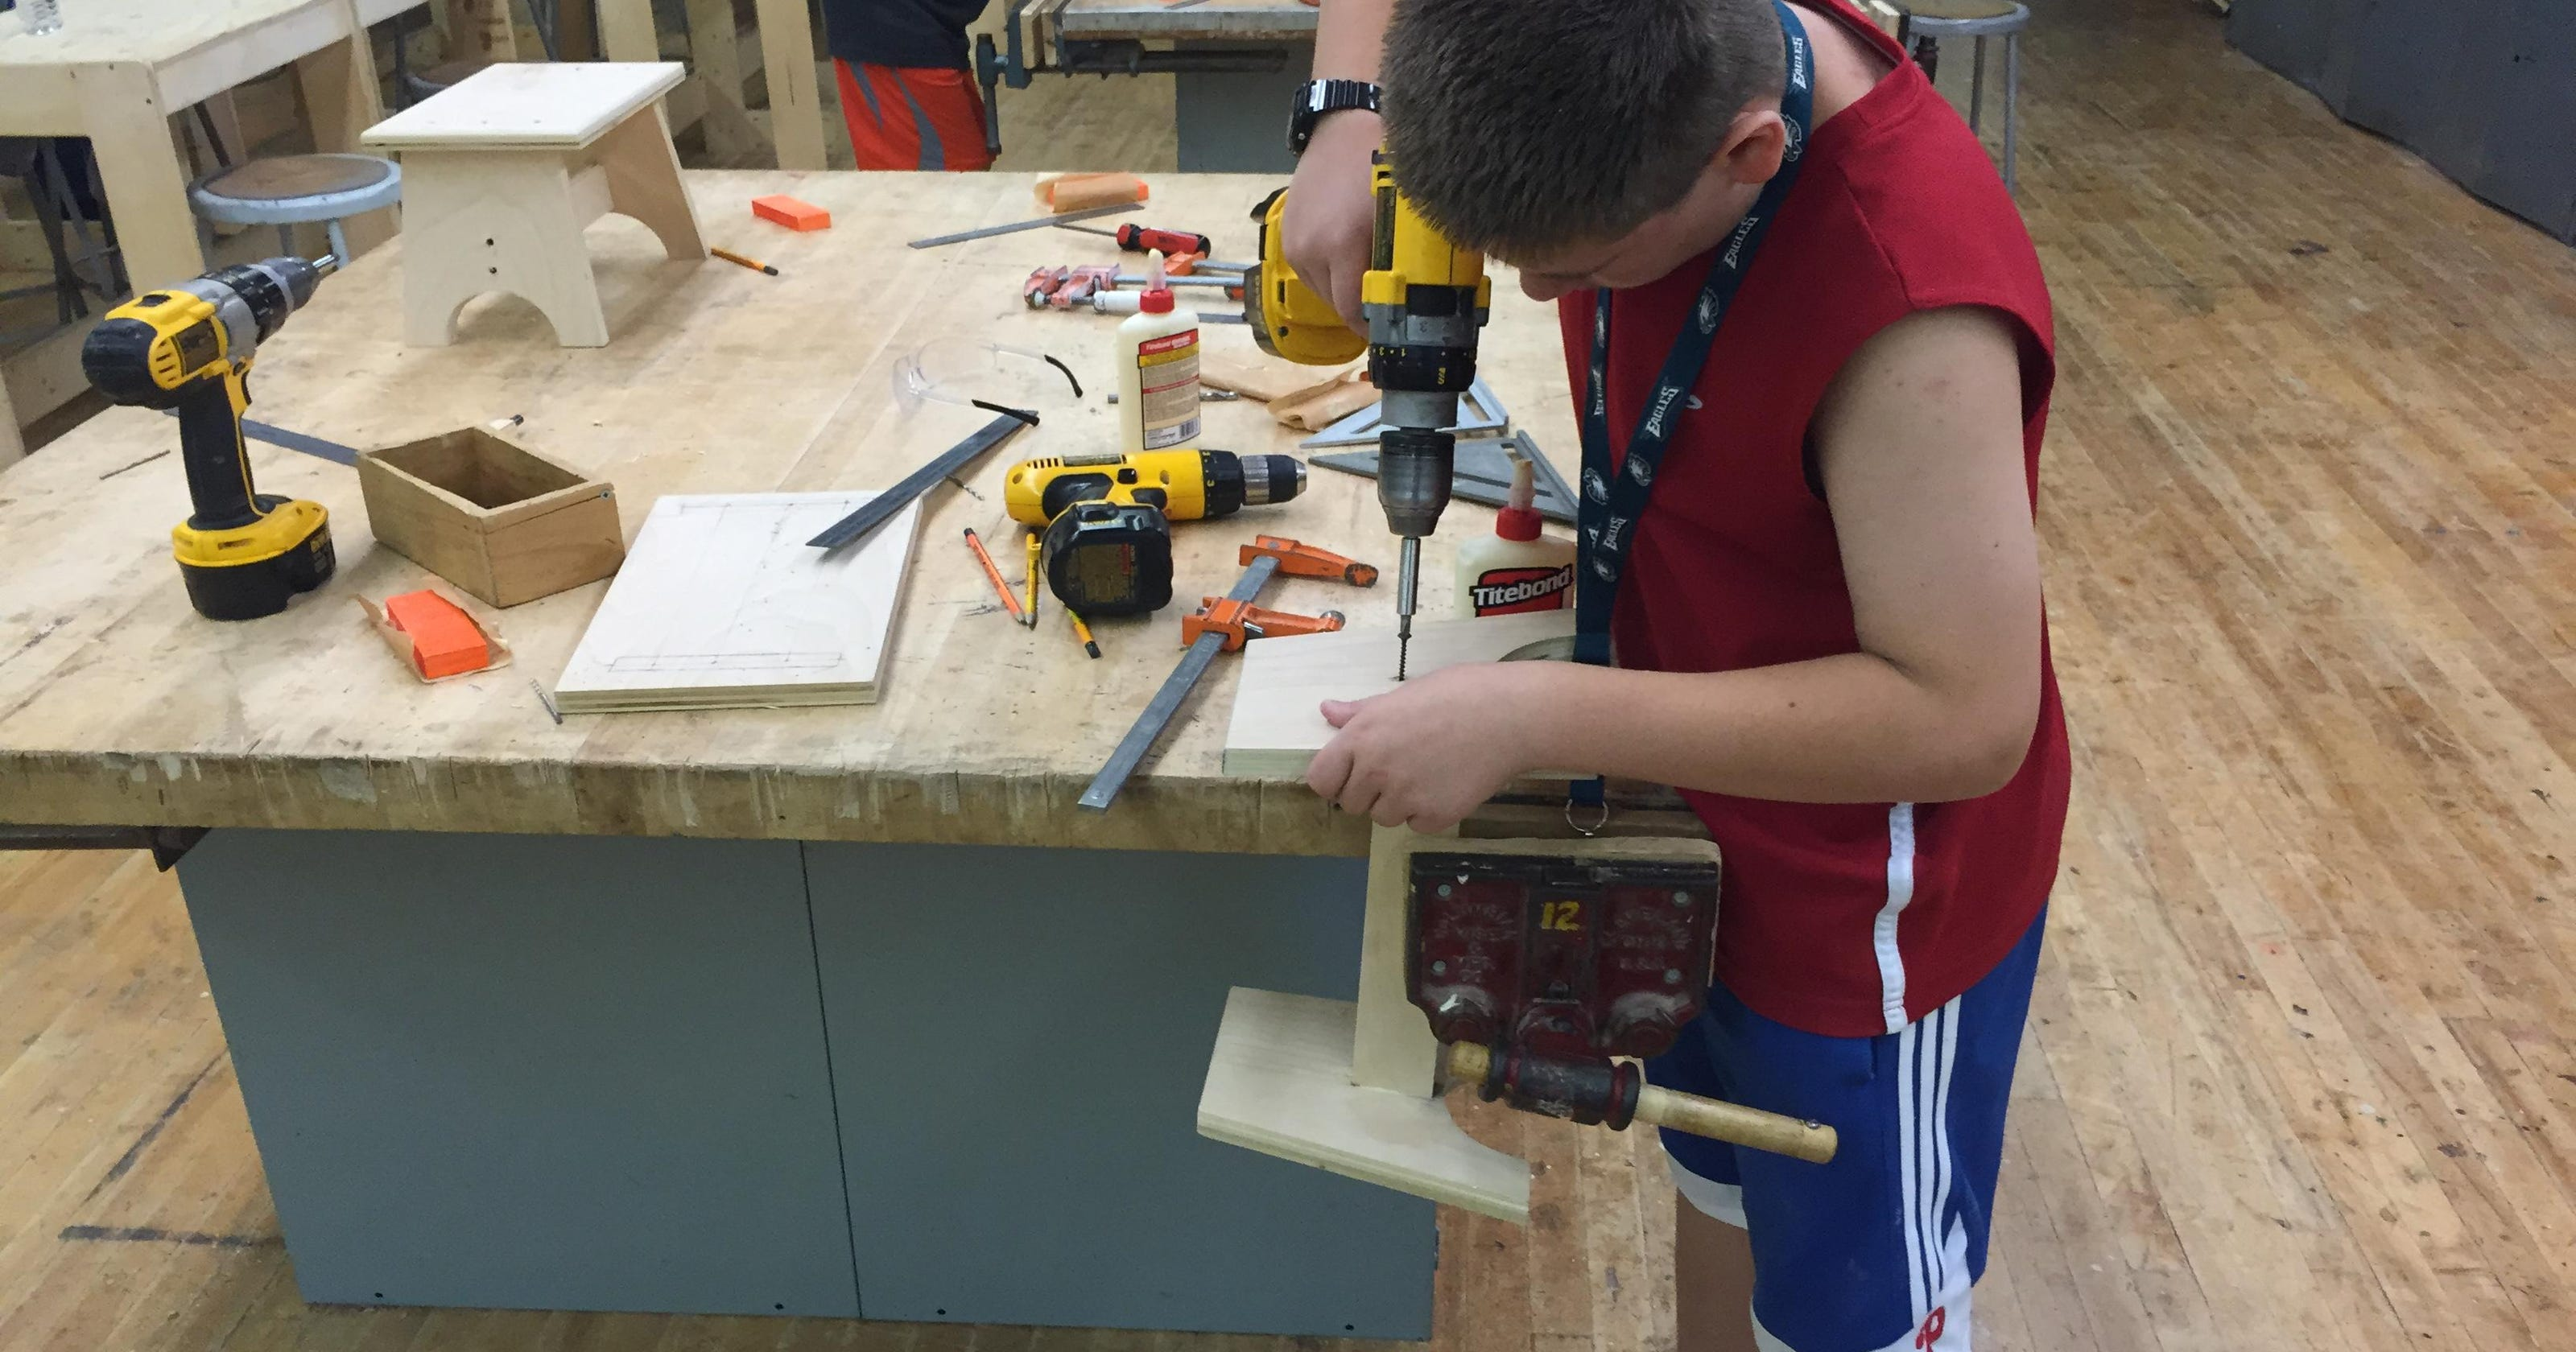 Kids weld, saw and hammer in construction camp